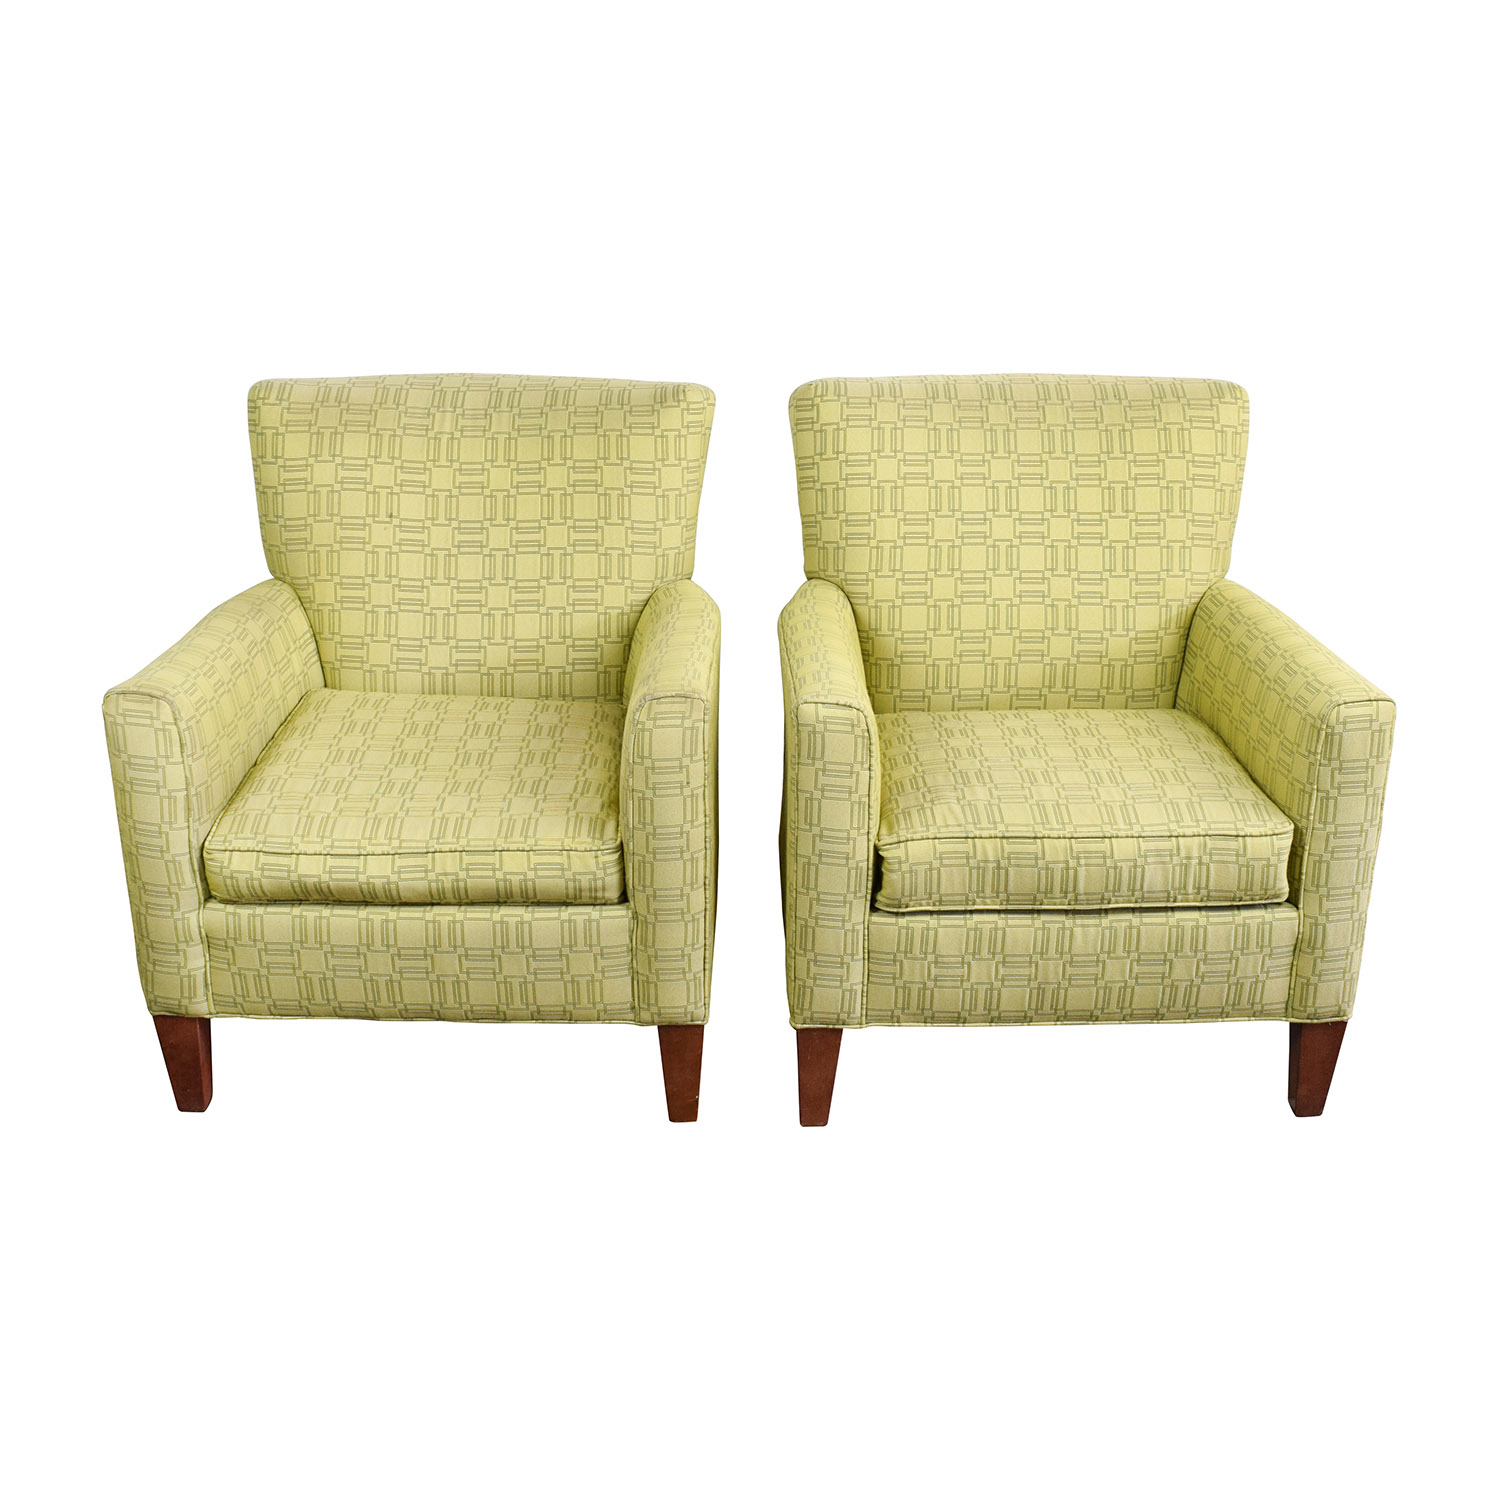 Green Upholstered Chair 90 Off Ethan Allen Ethan Allen Green Upholstered Accent Chairs Chairs